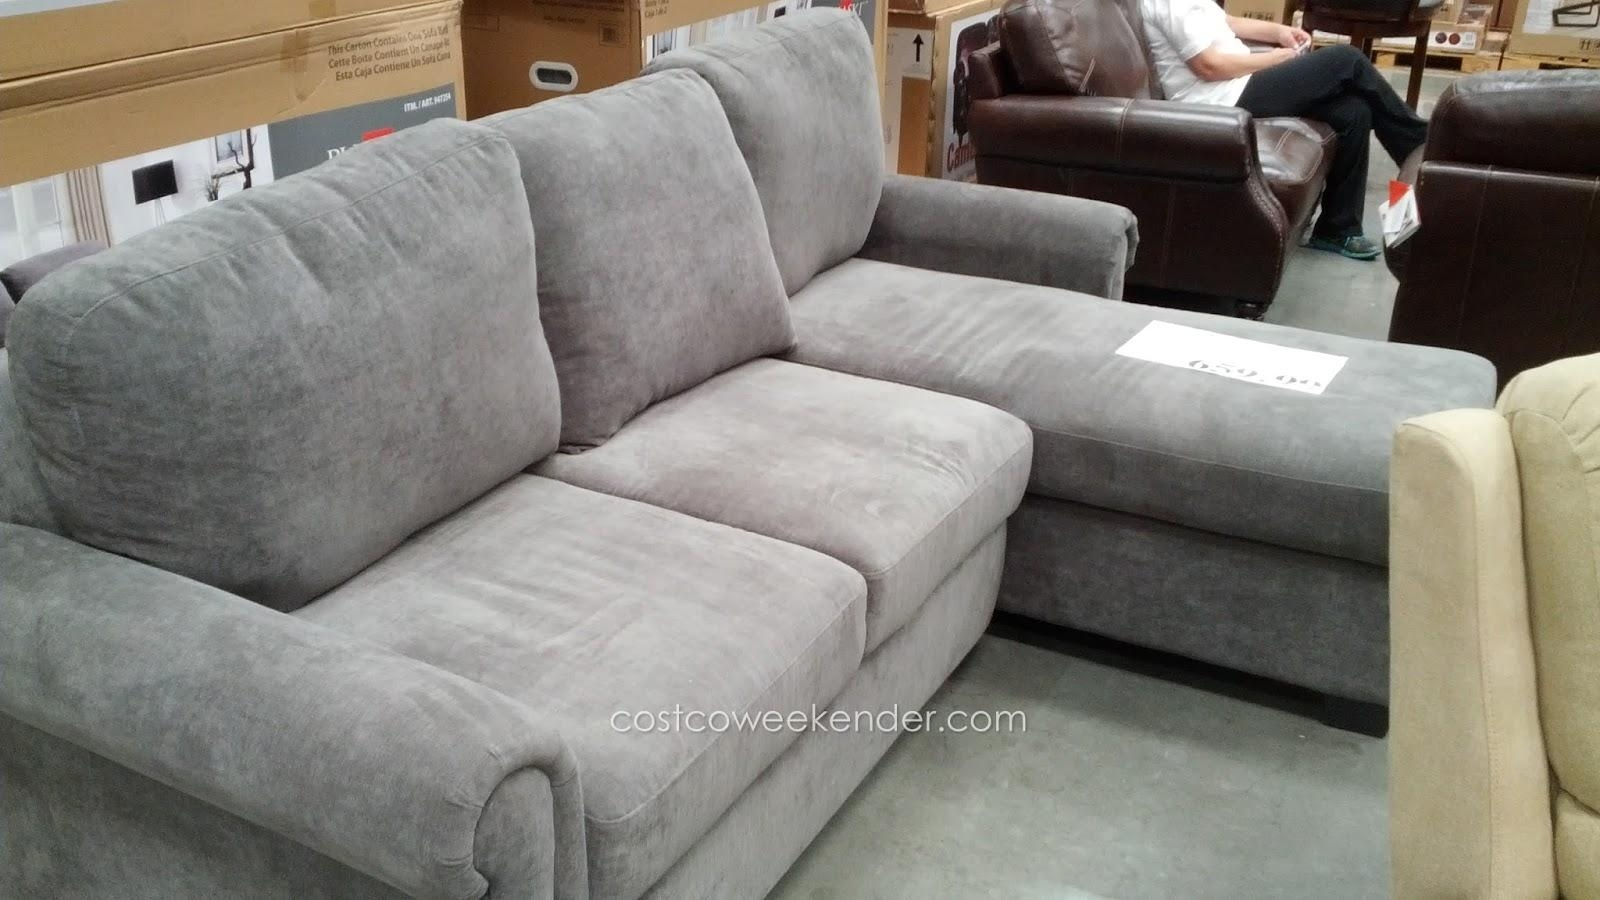 Sofa Bed With Storage Chaise 17 With Sofa Bed With Storage Chaise For Chaise Sofa Beds With Storage (Photo 15 of 20)